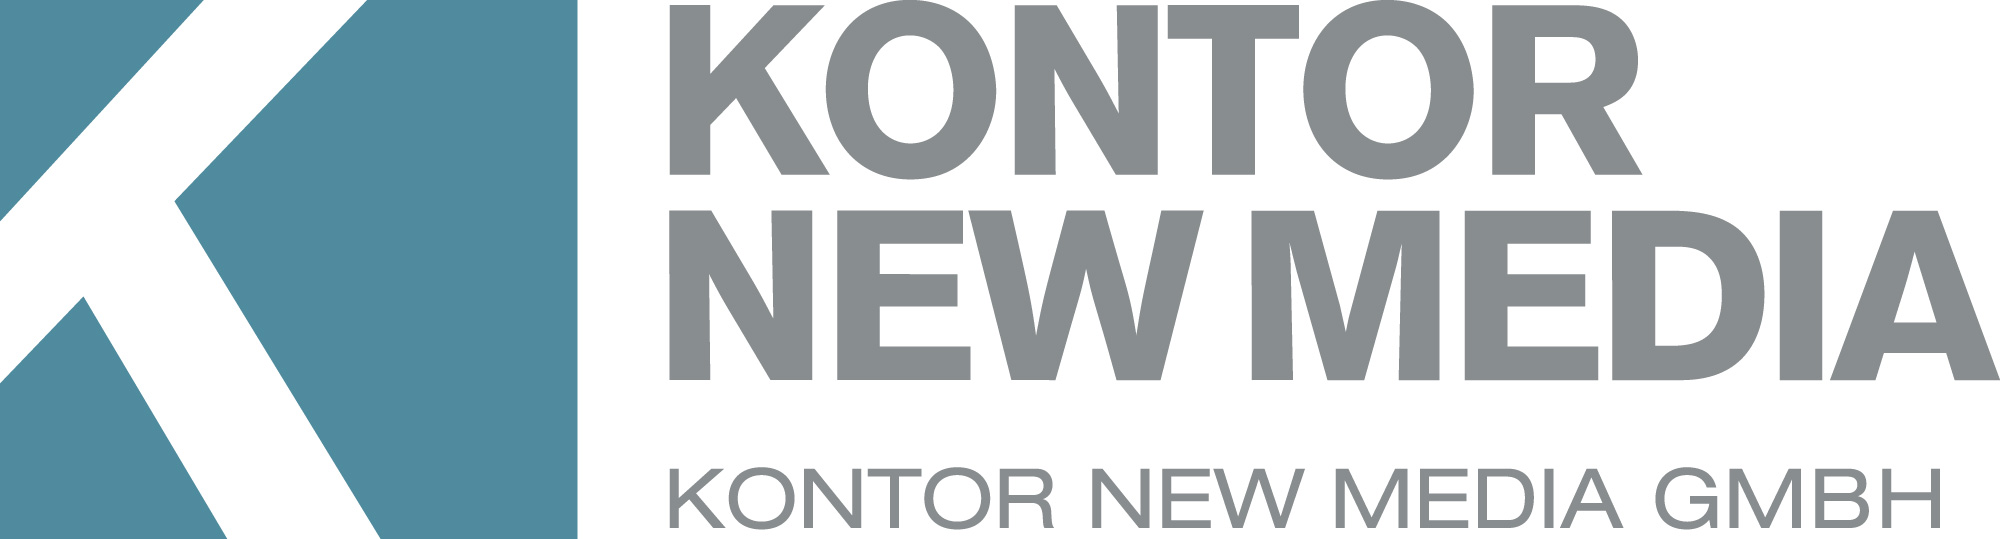 Kontor New Media GmbH